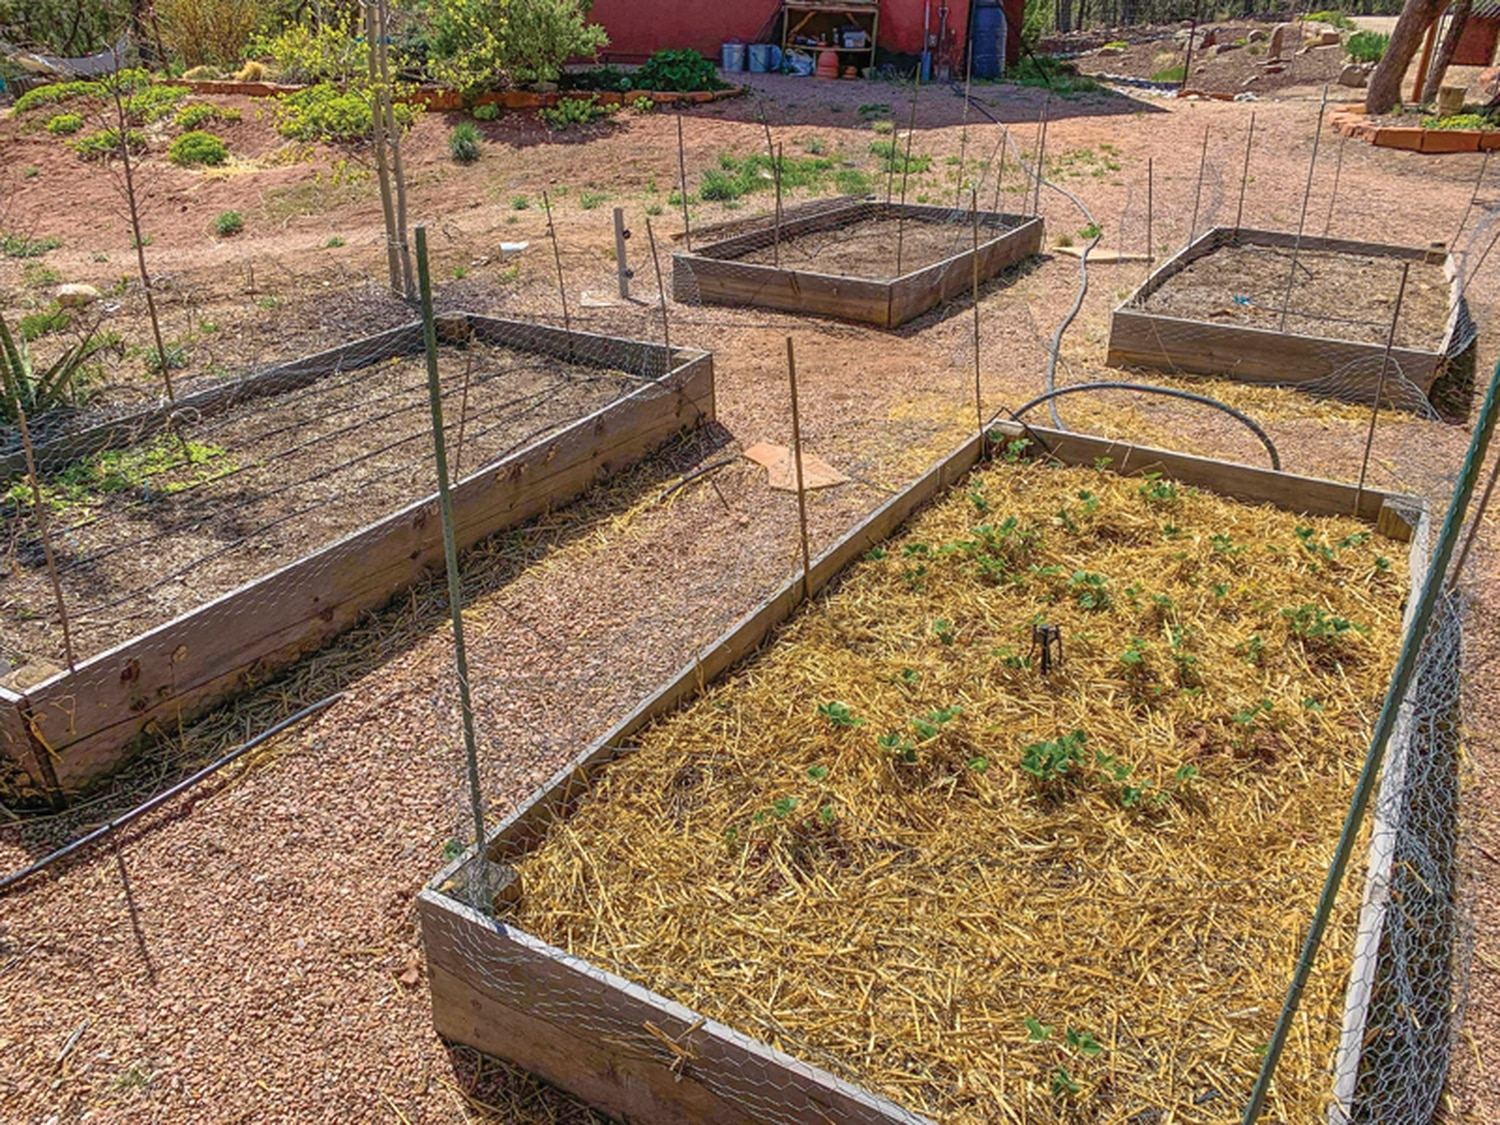 Soon the raised beds at Paul Groetzinger's house will explode with life—and no shortage of fresh, delicious food options.